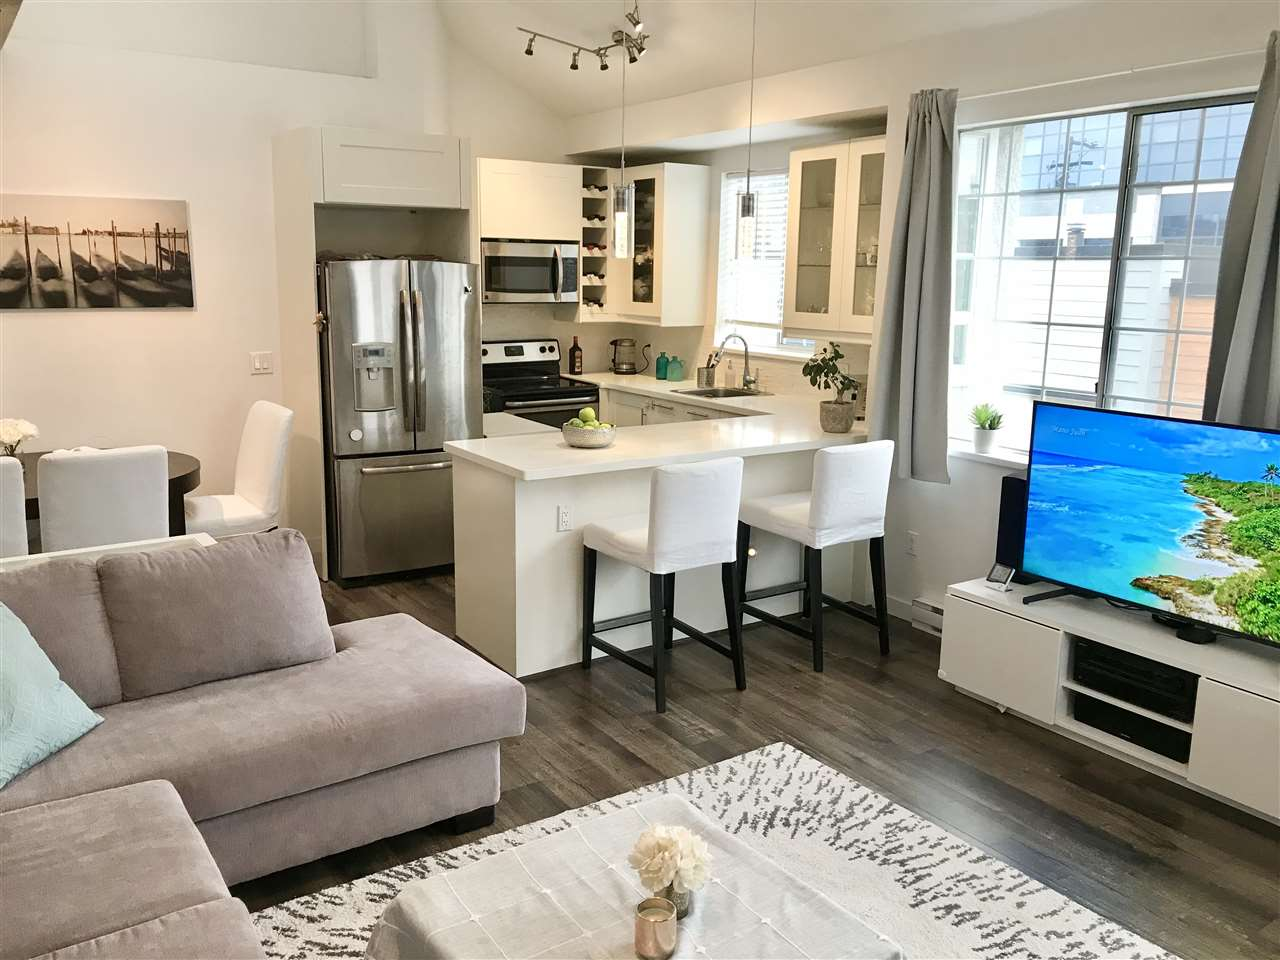 310 125 W 18TH STREET - Central Lonsdale Apartment/Condo for sale, 2 Bedrooms (R2544674) - #1